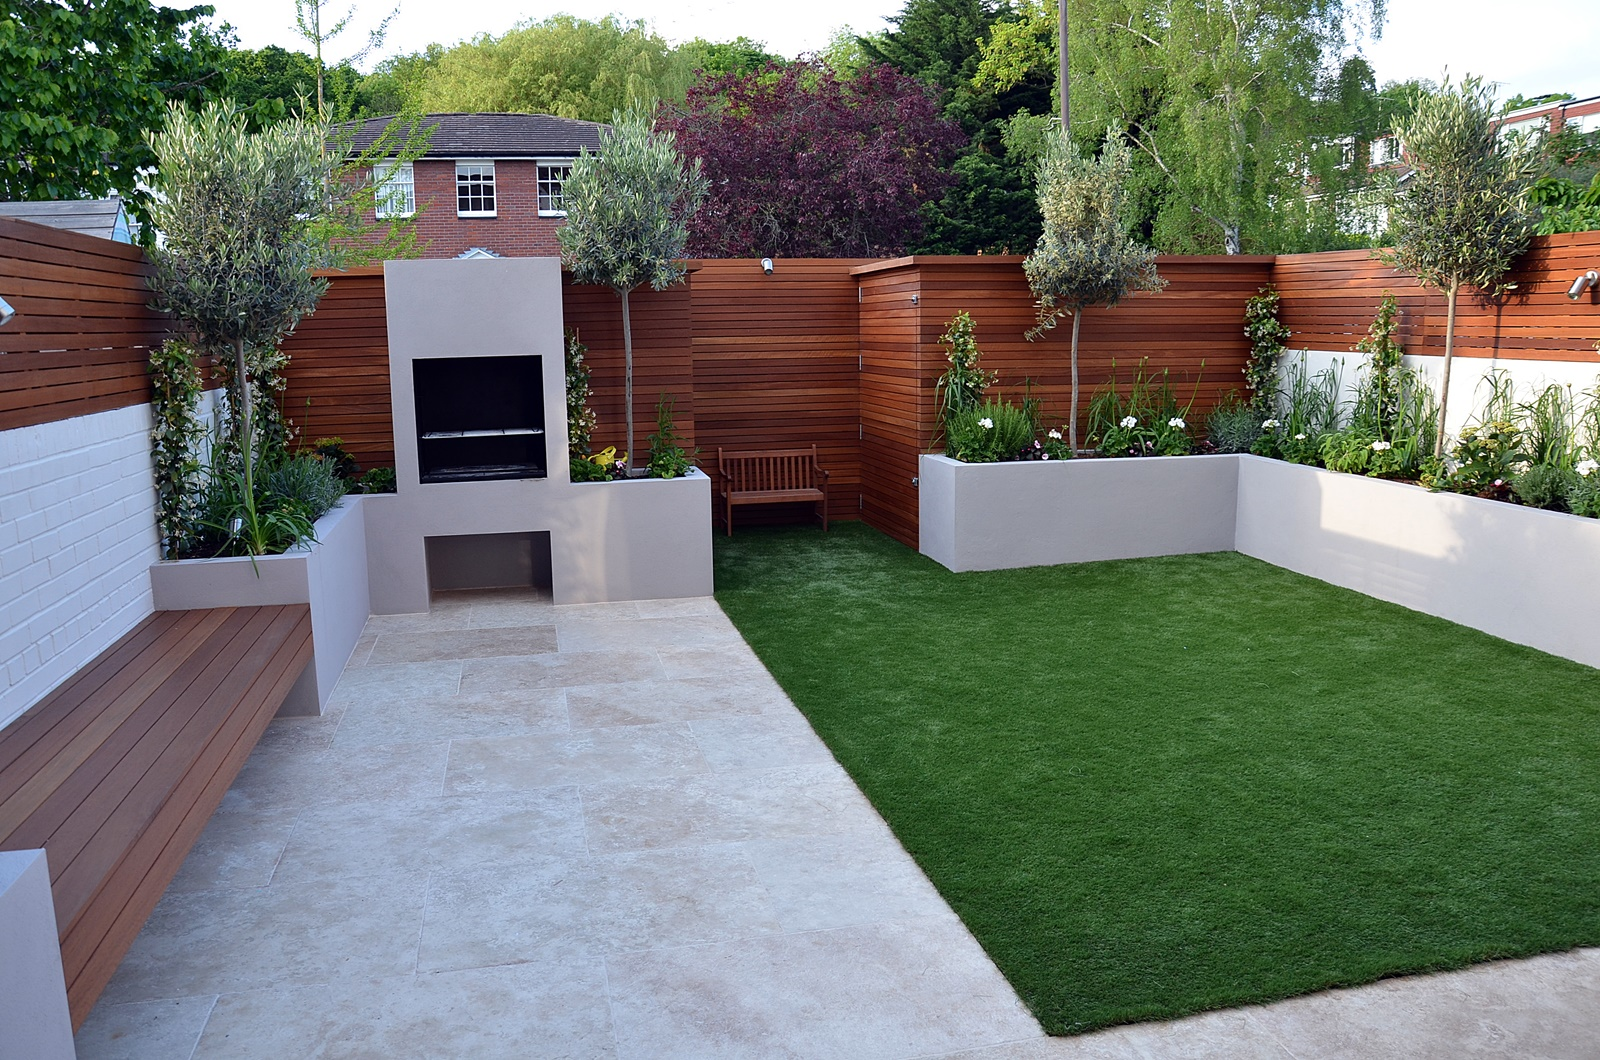 Modern garden design fulham chelsea clapham battersea for Garden design ideas photos